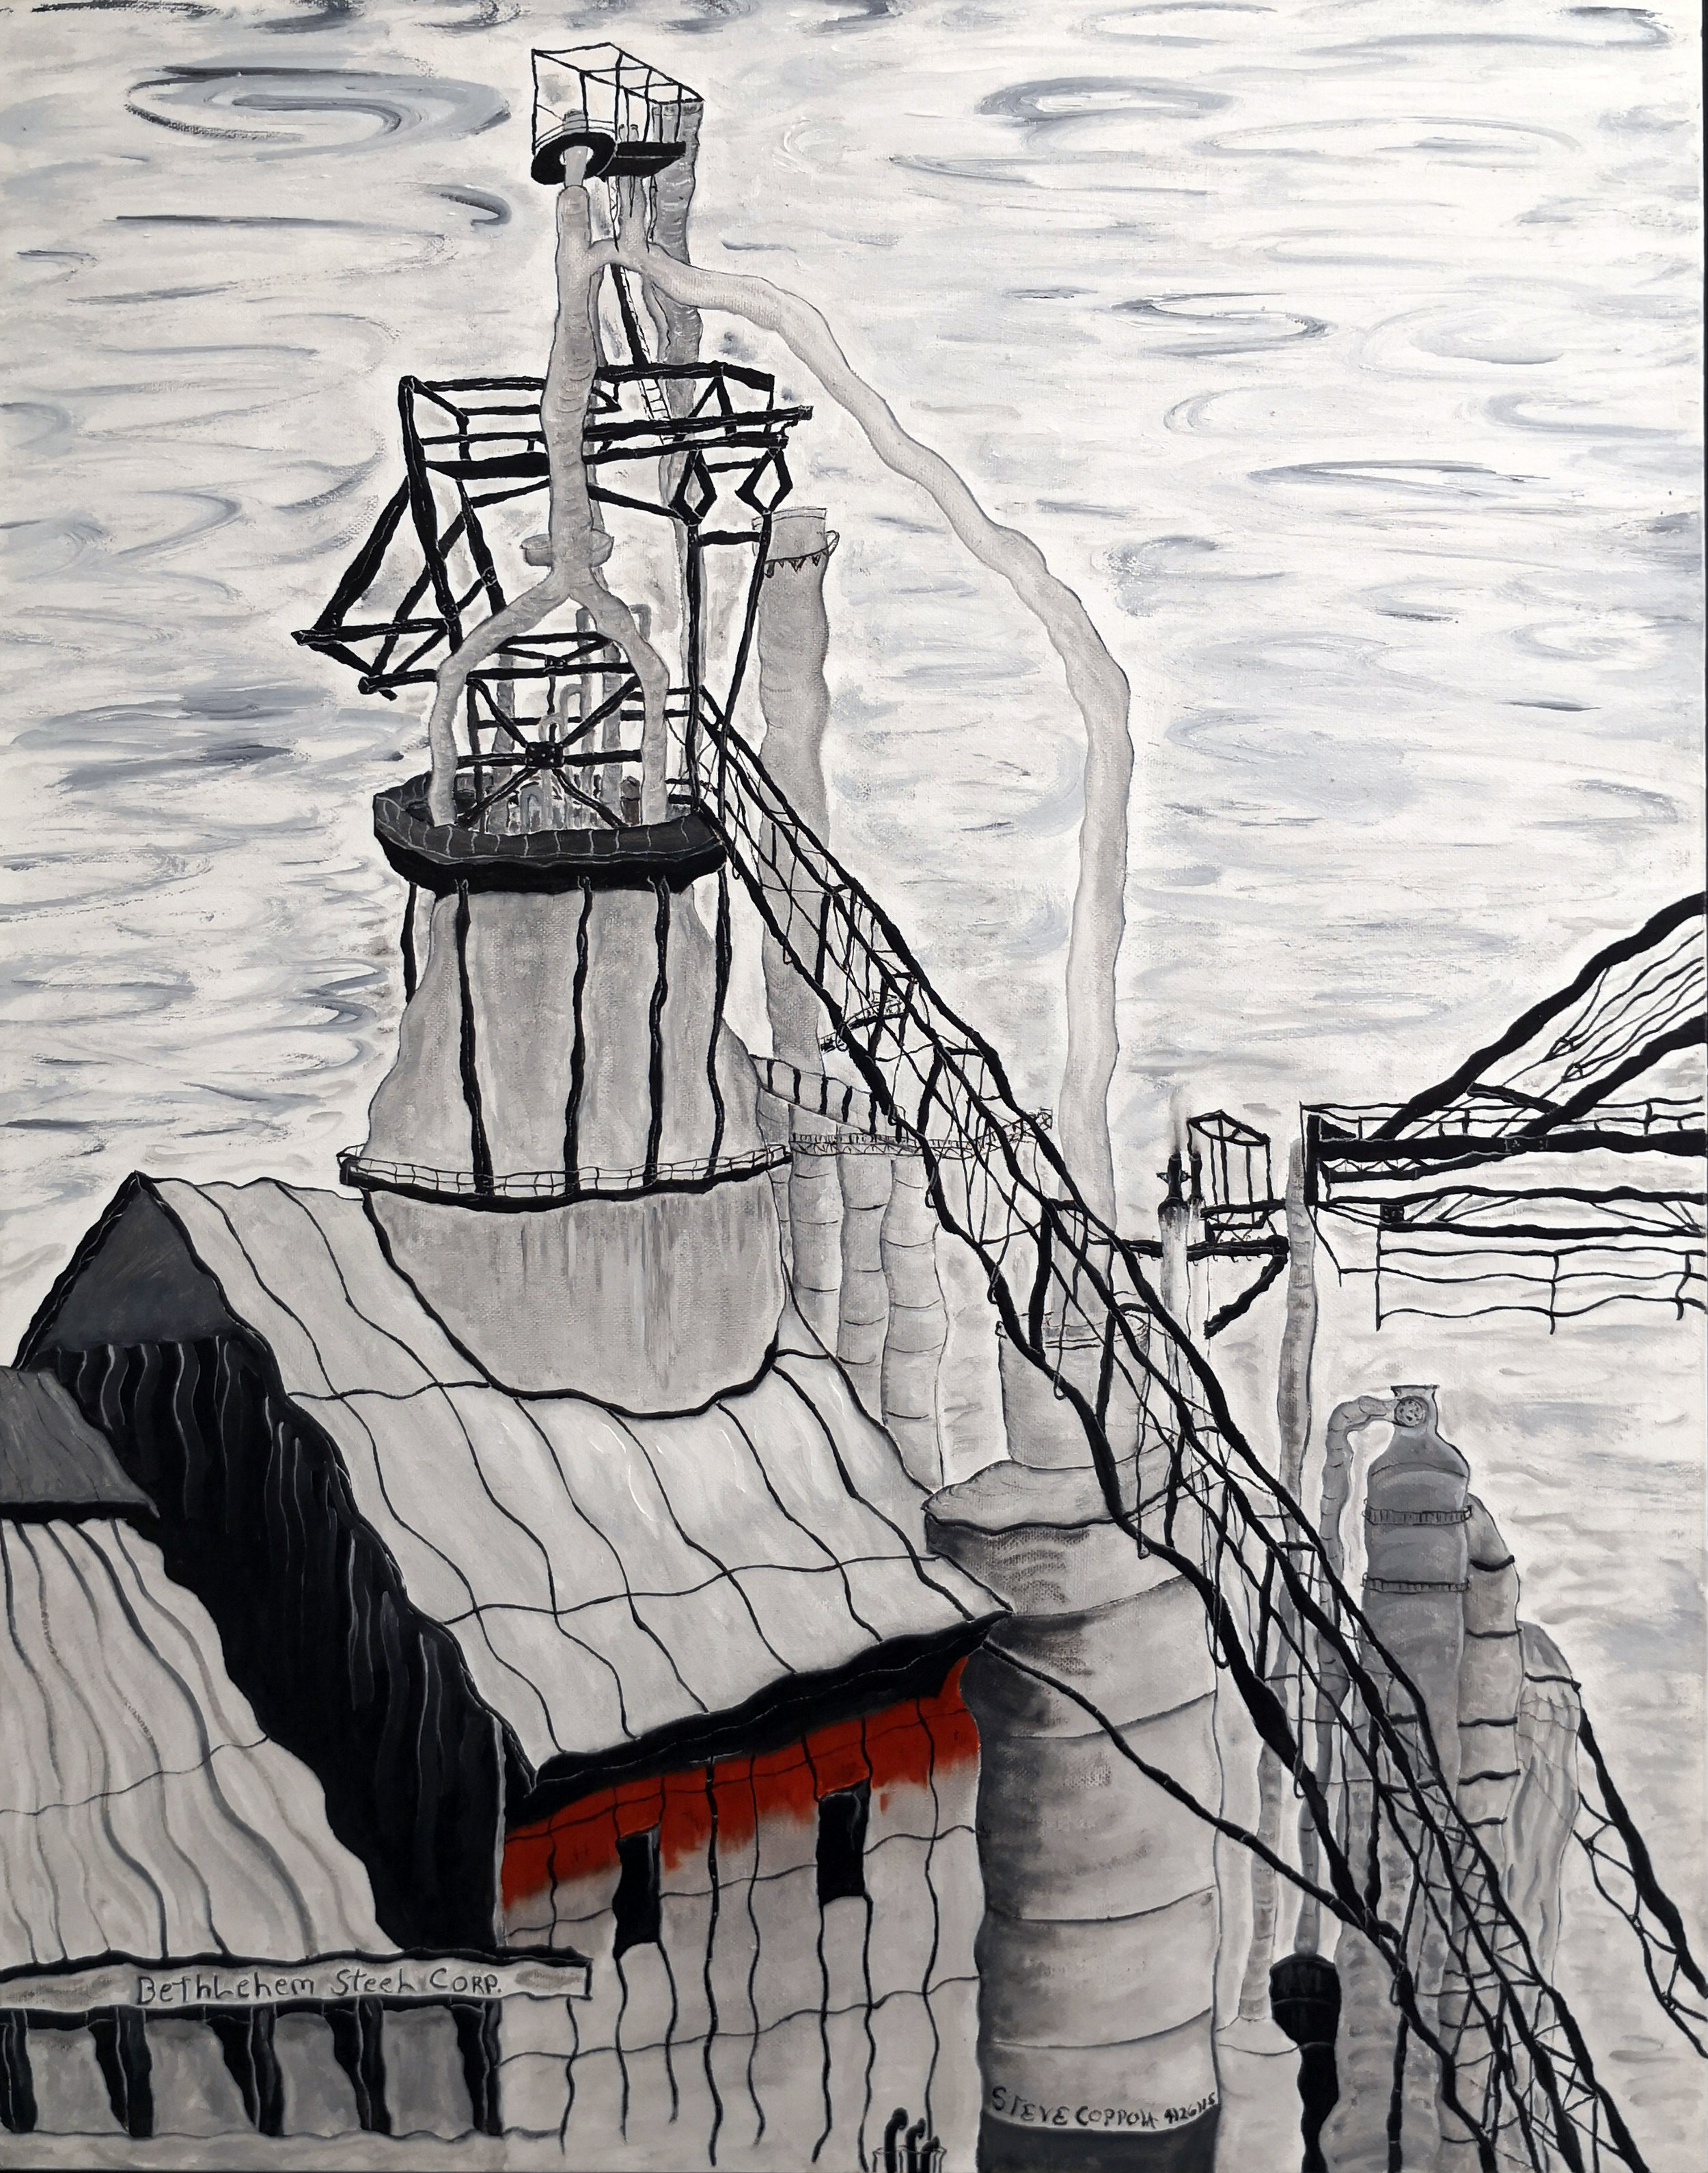 Stephen Coppola, Steel Plant, Oil on canvas, 28 x 22 inches (71.1 x 55.9 cm)